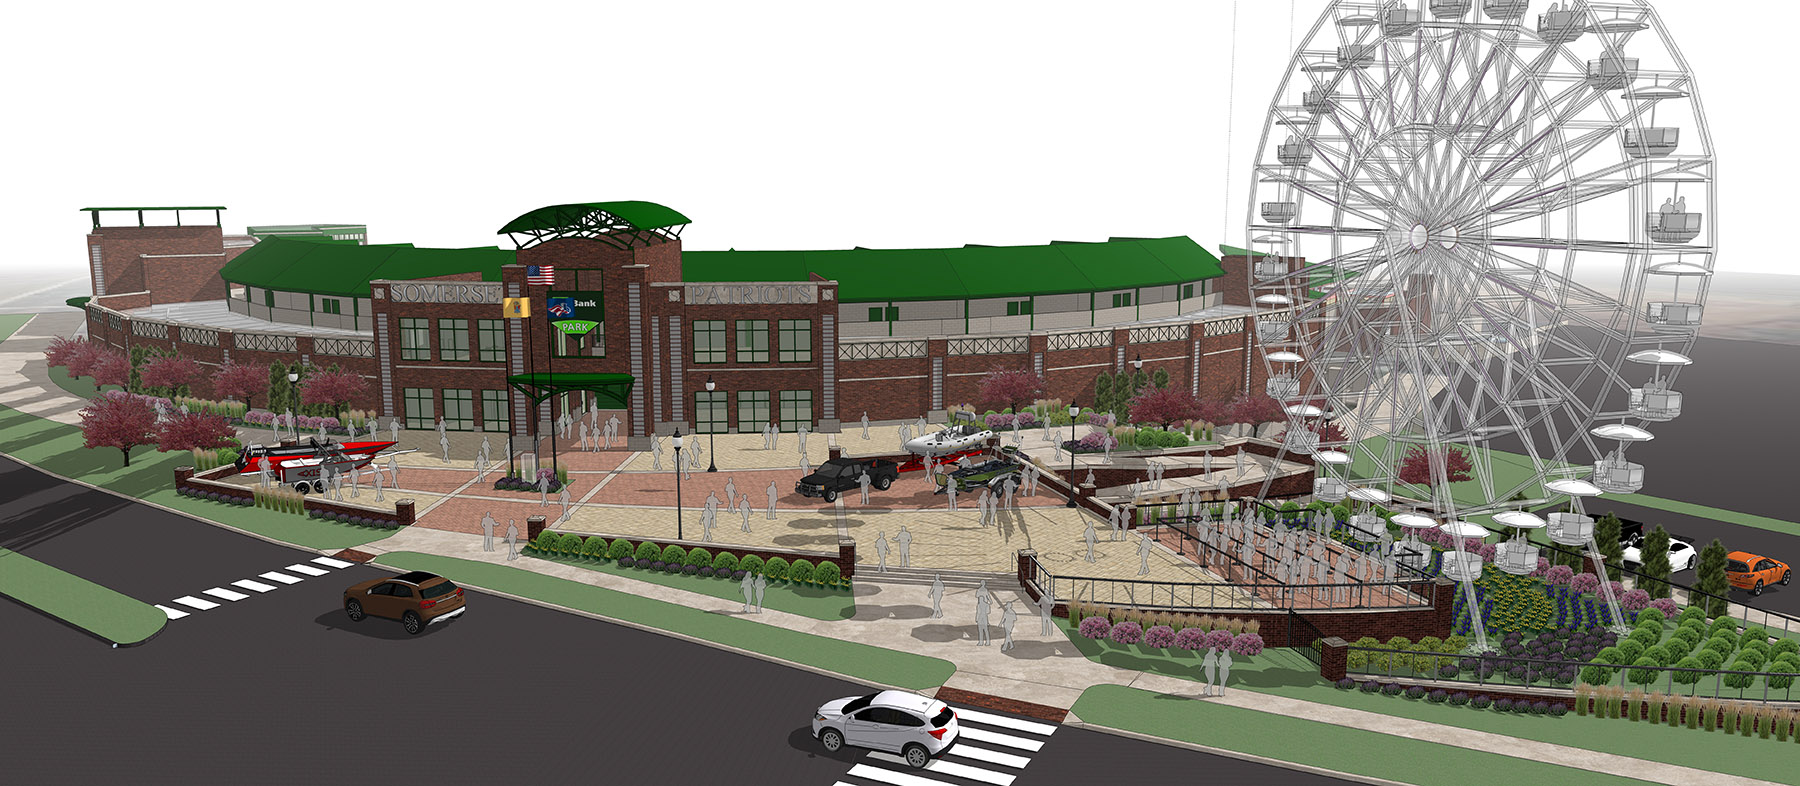 TD Bank Ballpark Improvements 2019